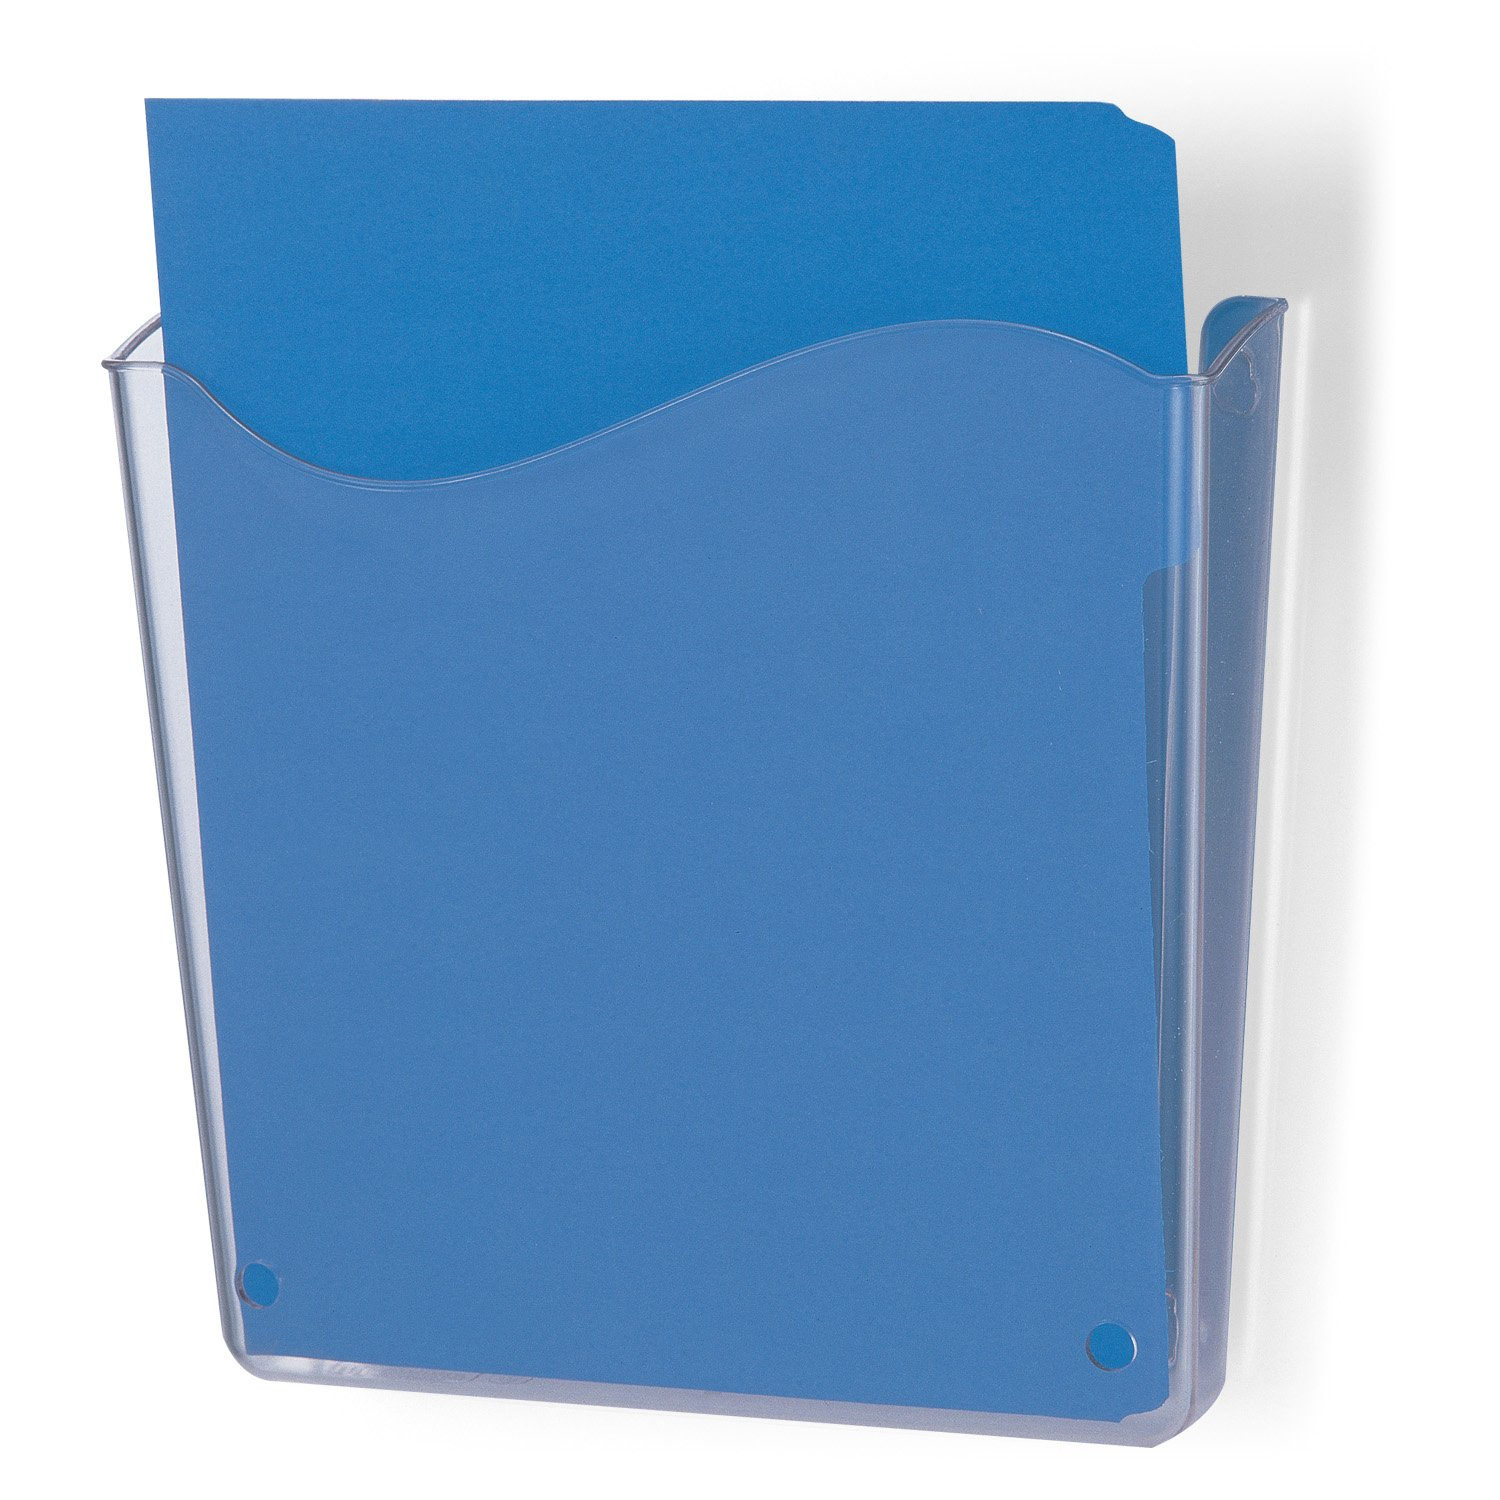 Officemate Unbreakable Wall File, Vertical, Clear (21674)